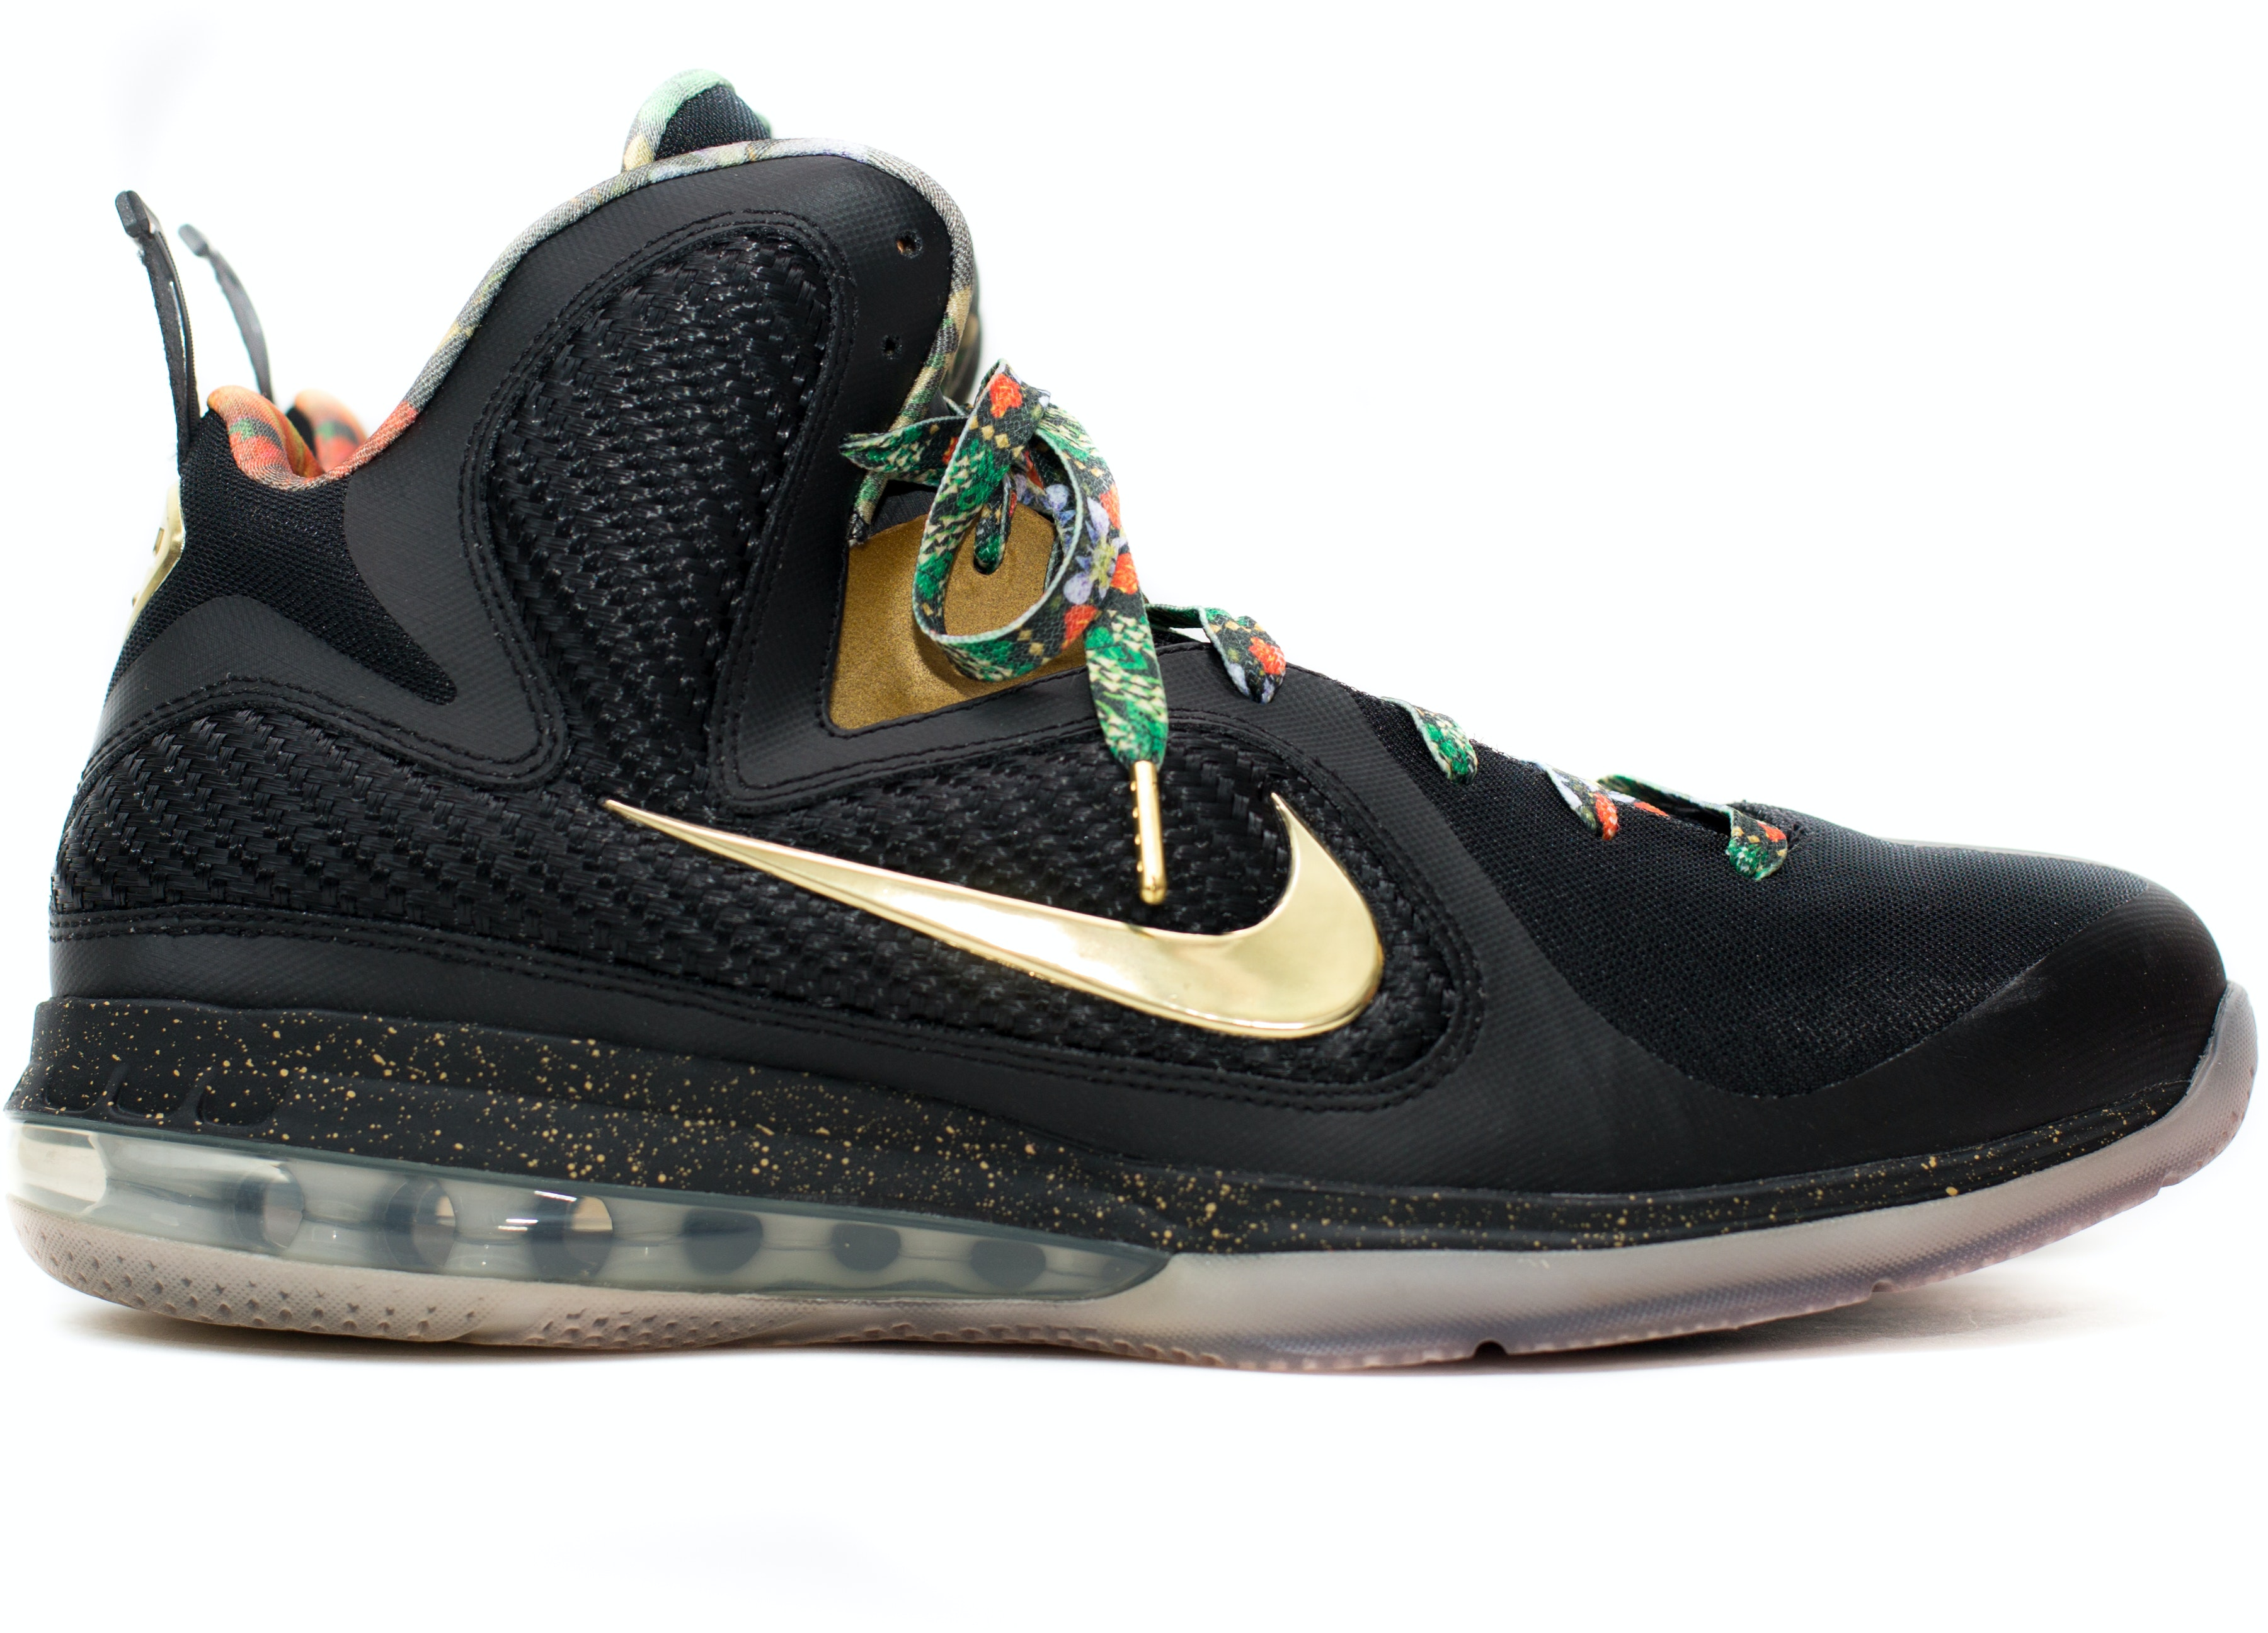 Official Quality Nike Lebron 9 Watch The Throne Lebron Cheap sal LeBron 9  Watch the Throne (sz 14) .